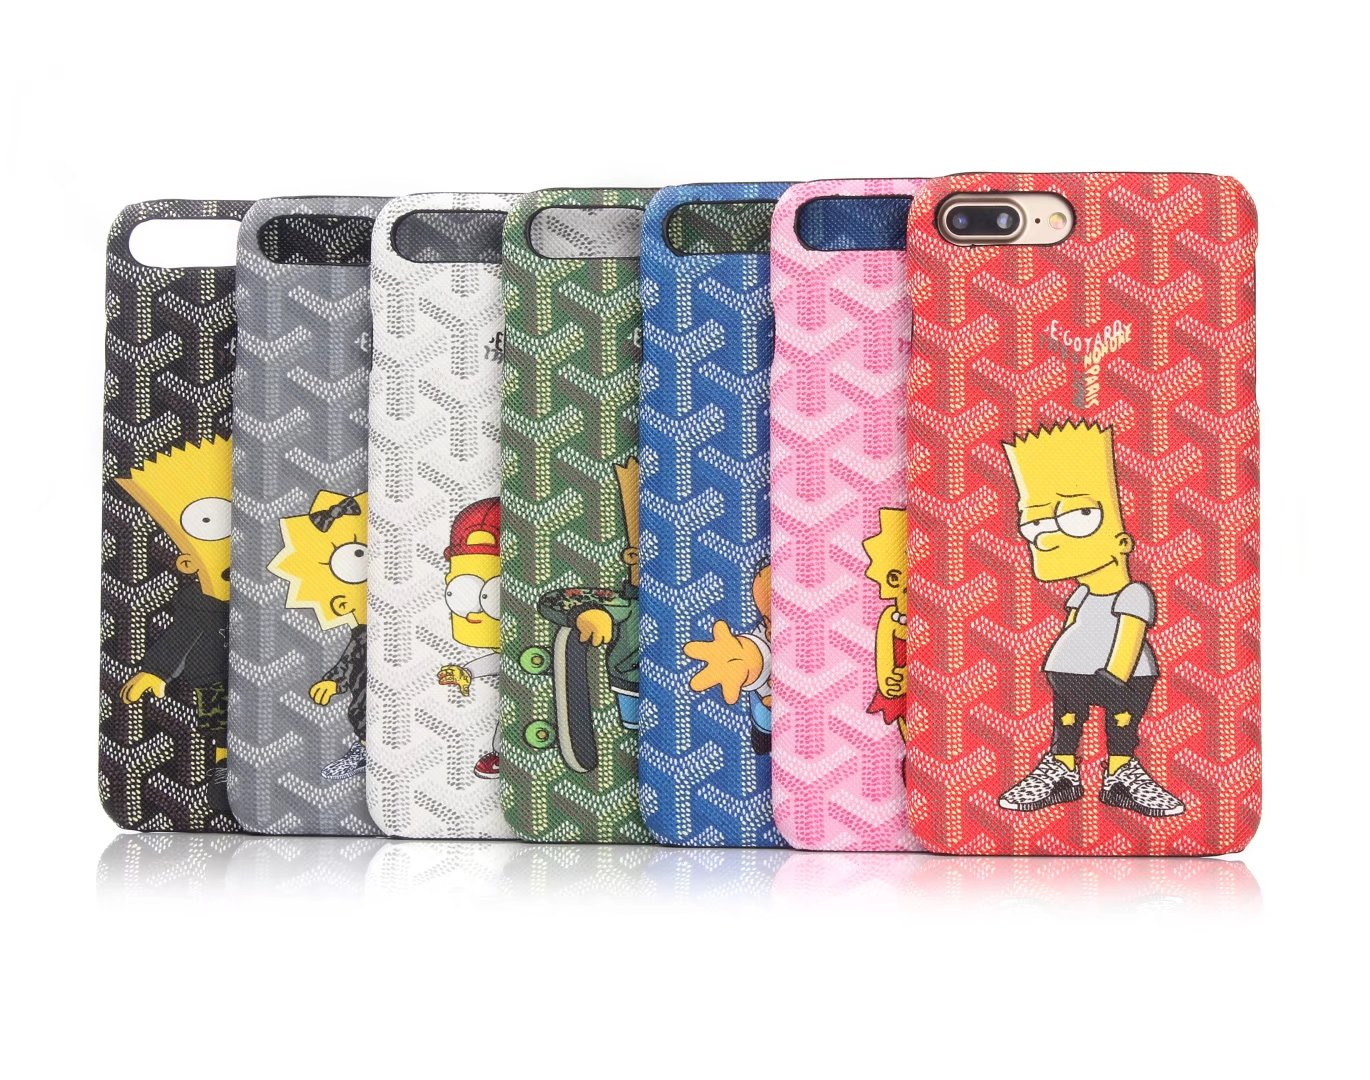 on sale f9048 5b364 Goyard simpson magnetic back phone case hard cover for iphone 6 6plus